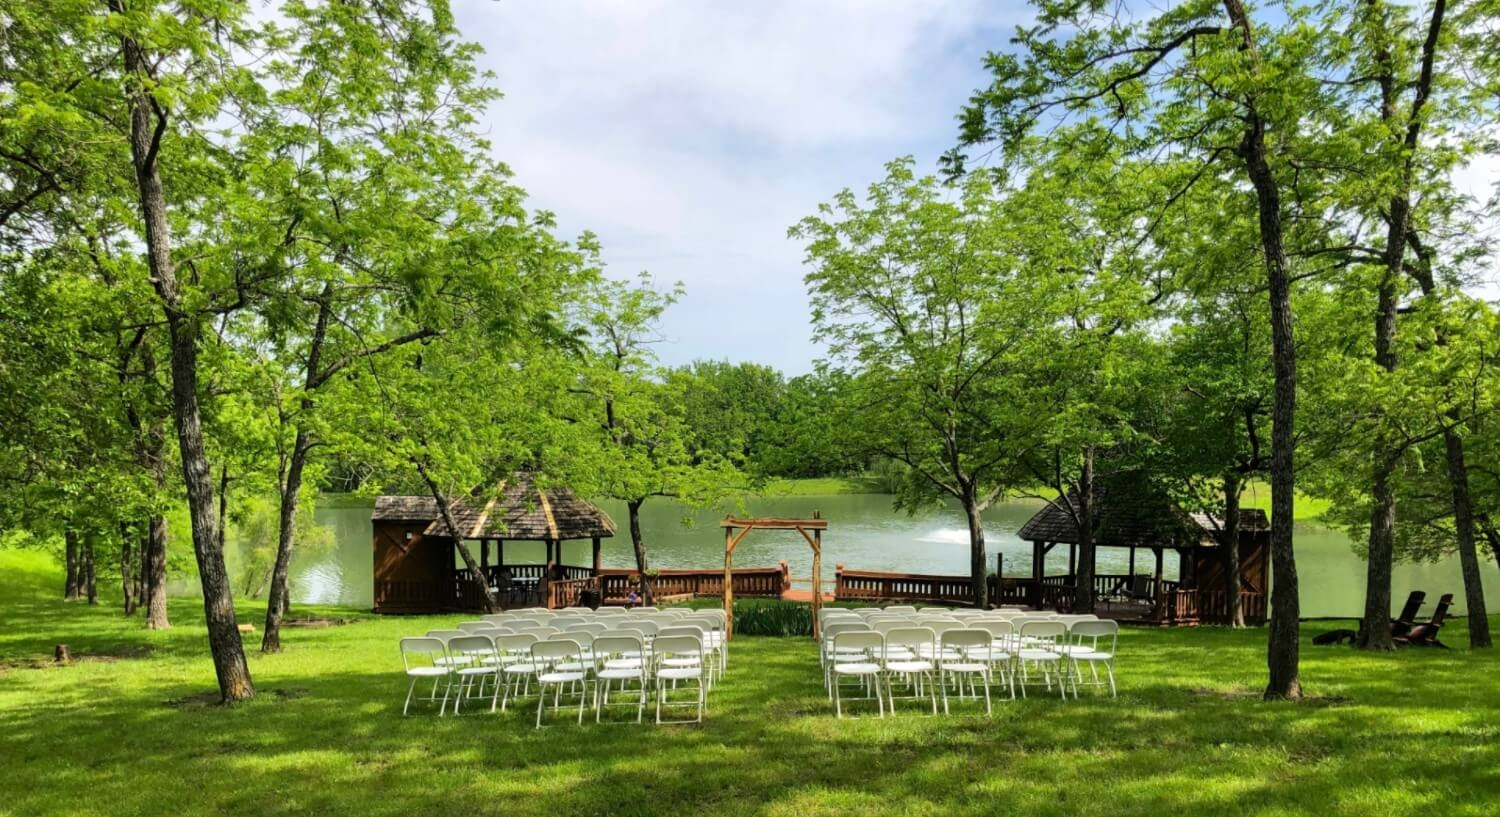 White chairs in rows in front of wedding arbor overlooking twin gazebos and pond